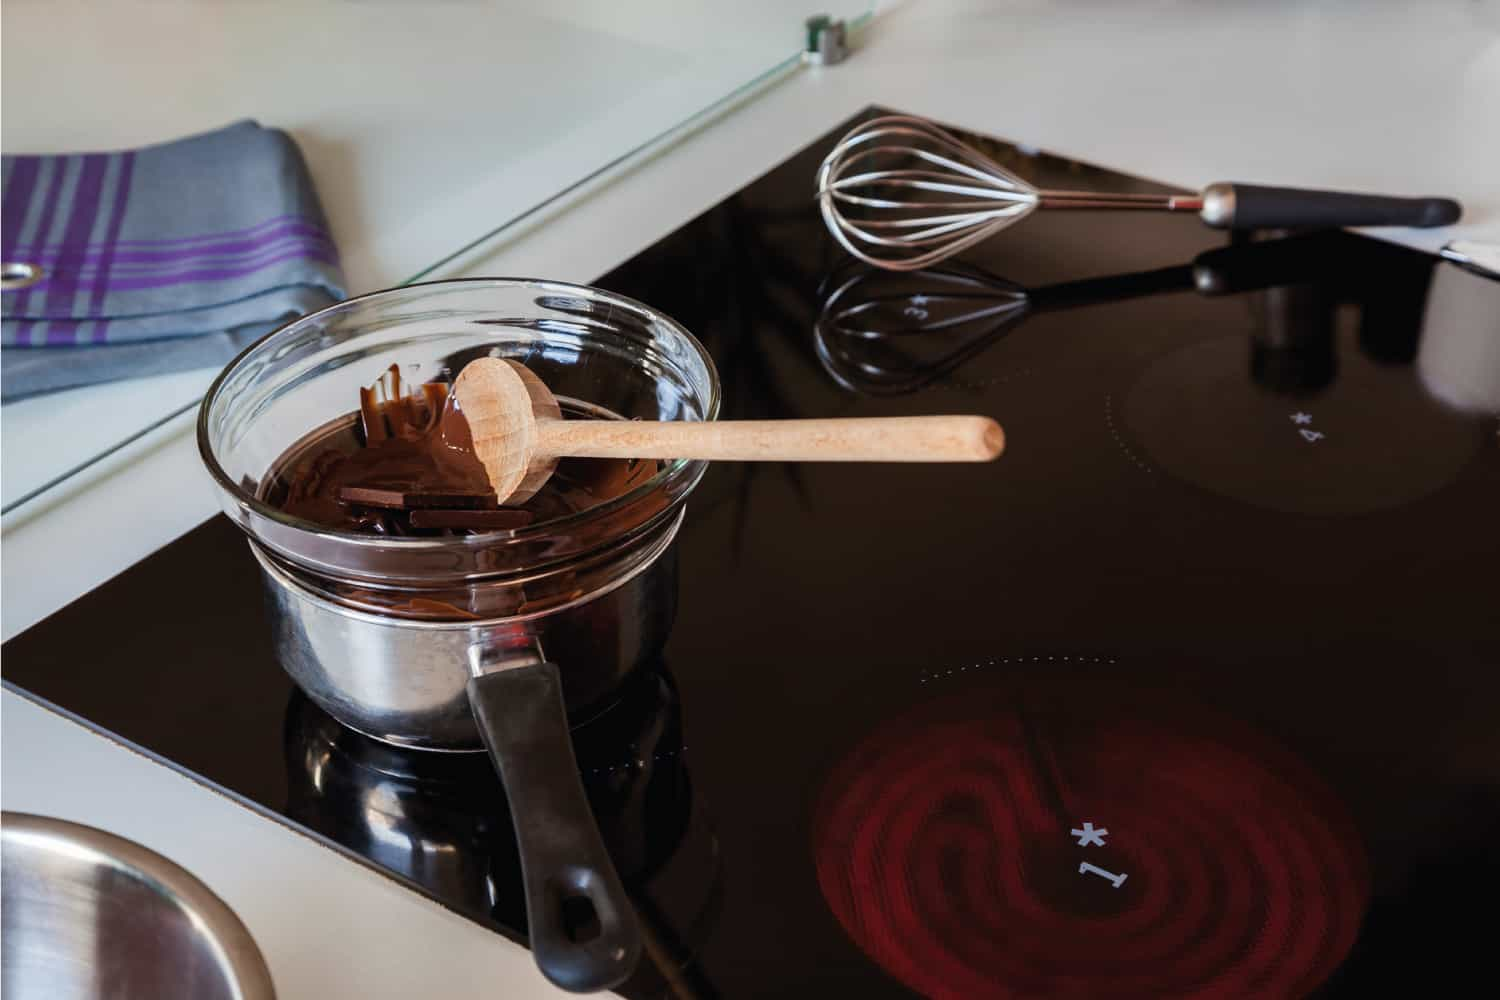 Tempering Delicious Chocolate in a glass bowl and a sauce pan on a induction stove top